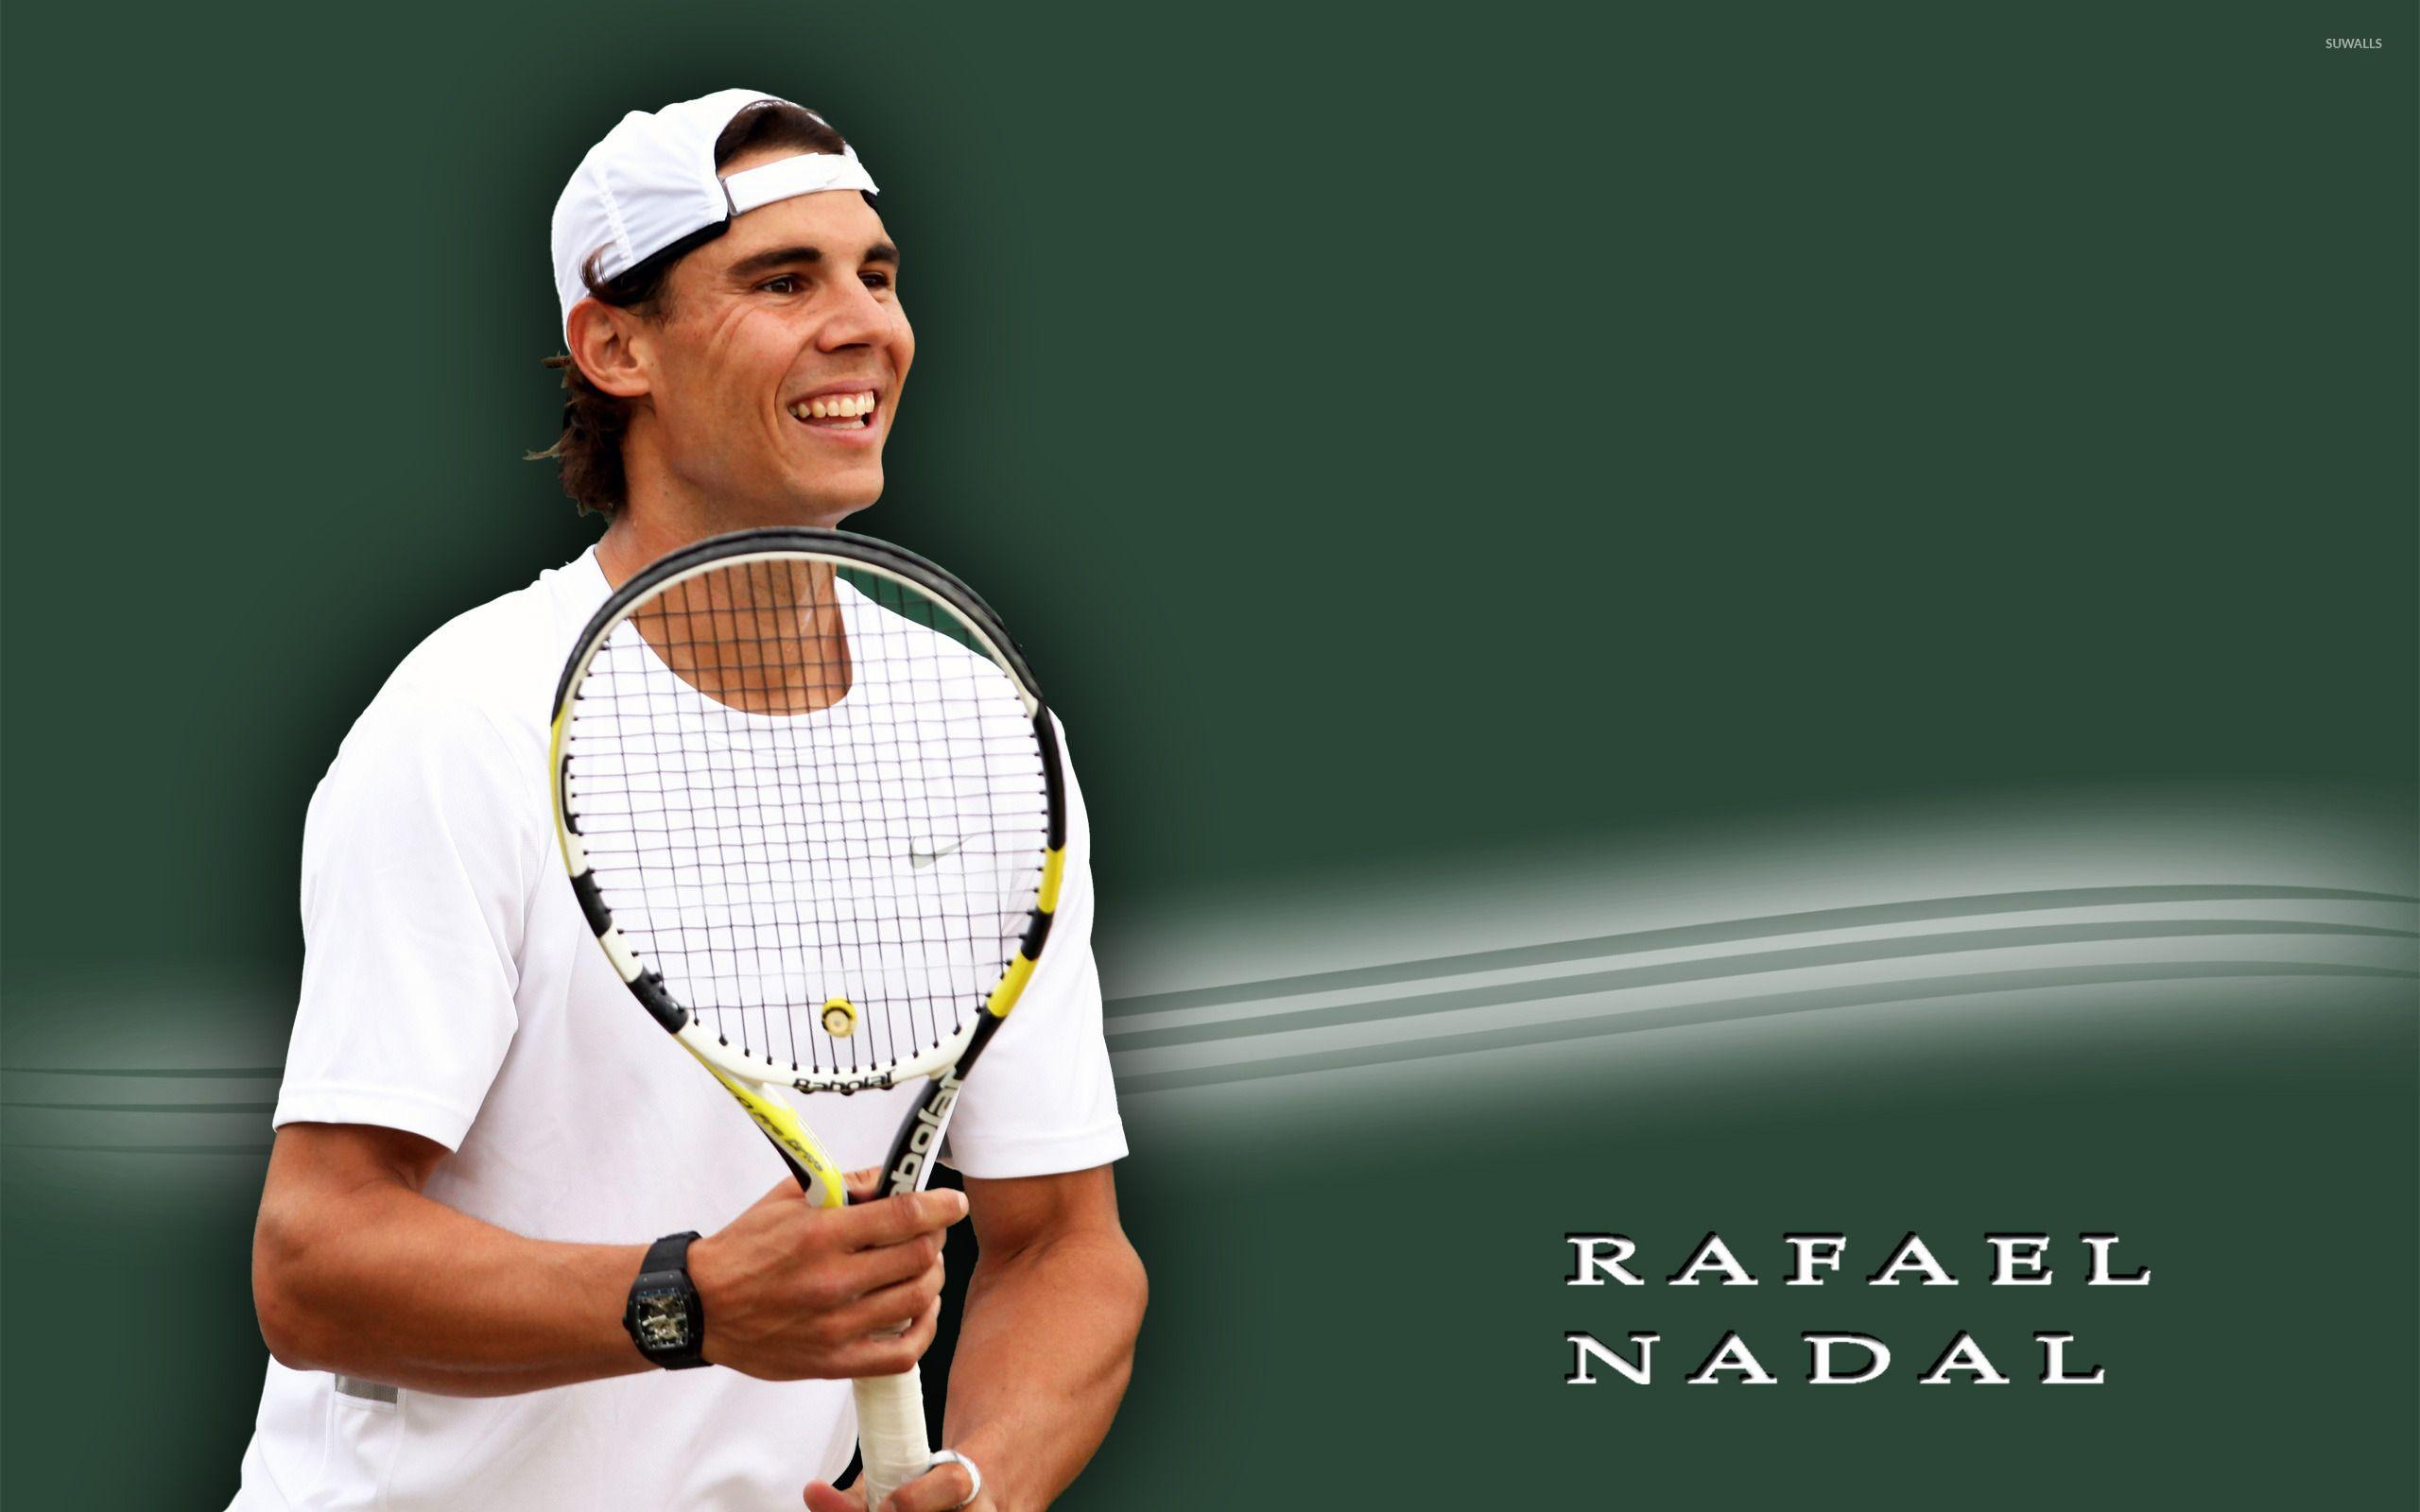 Rafael Nadal [7] wallpapers